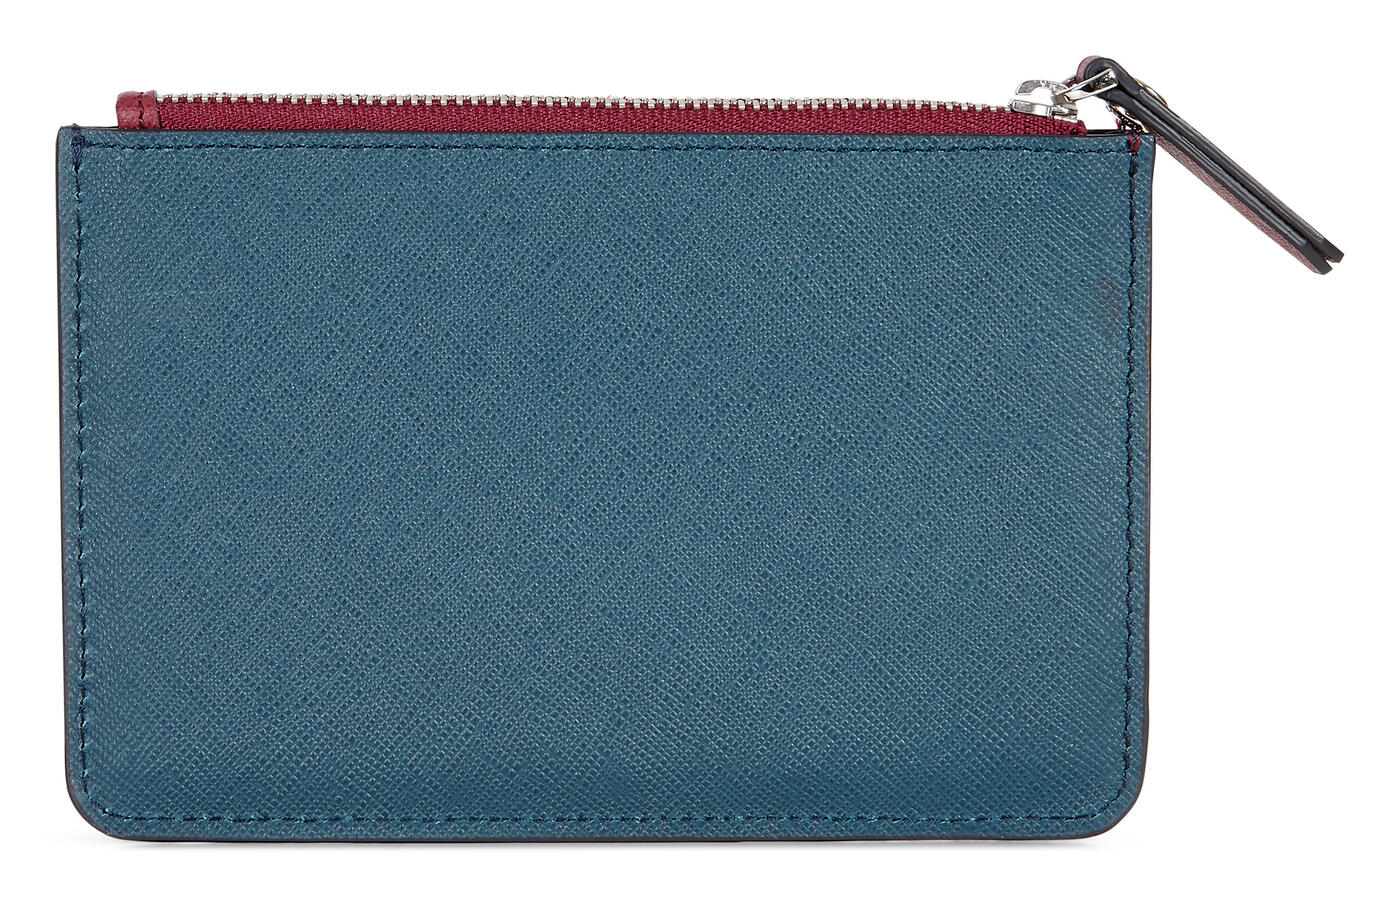 ECCO IOLA Small Travel Wallet